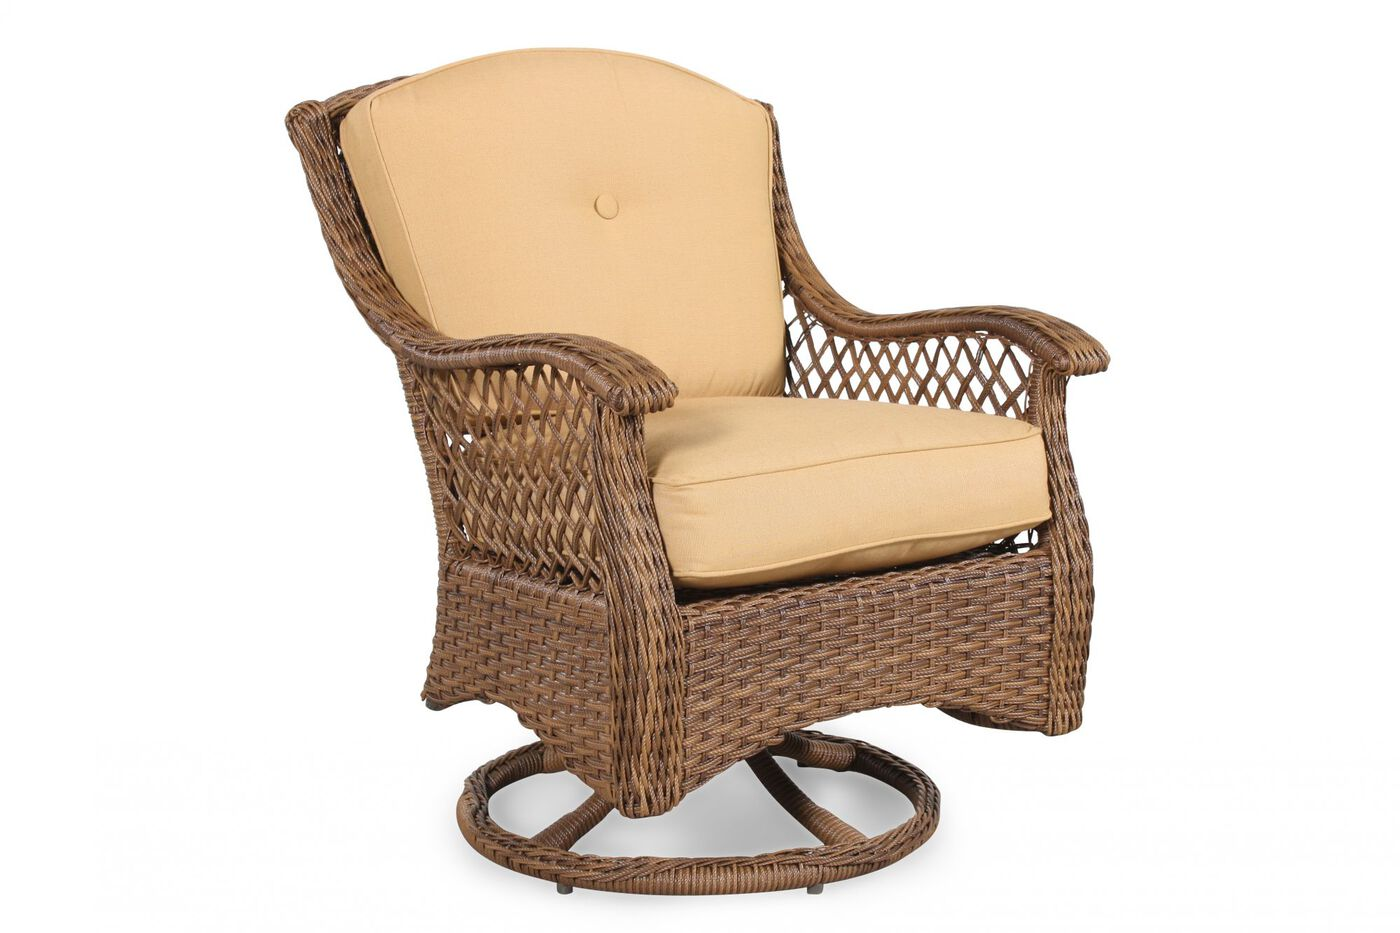 Agio Veranda Patio Swivel Rocker Chair